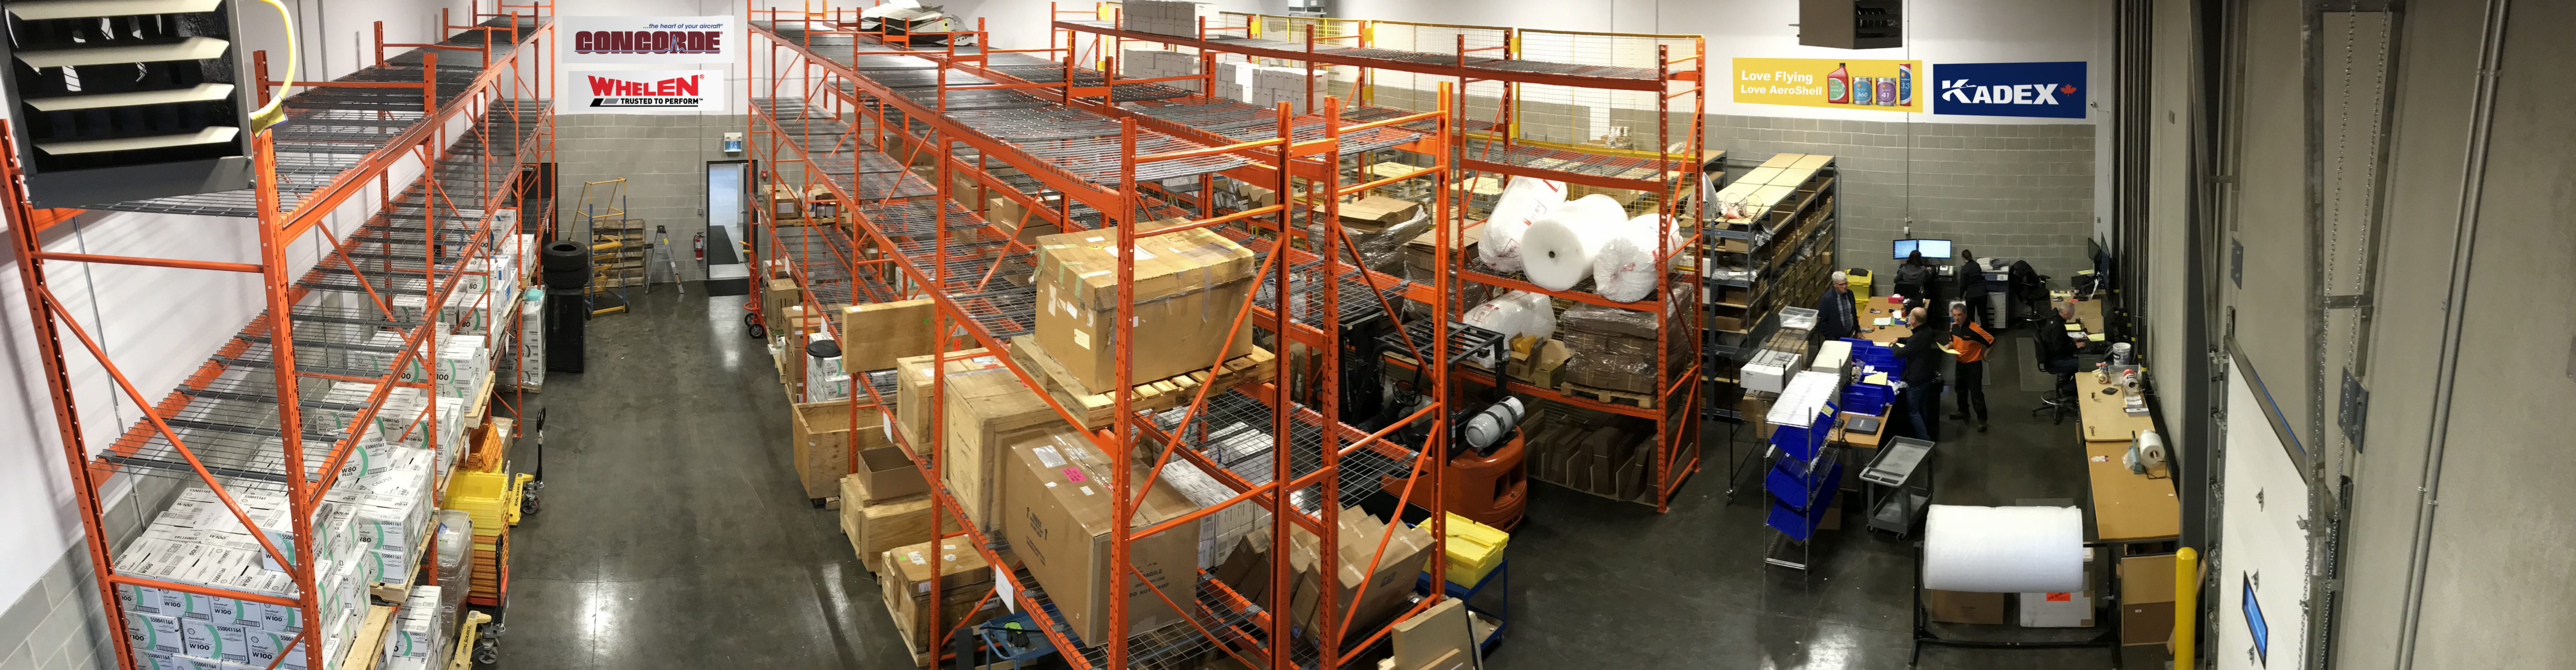 An interior view of Kadex's Calgary warehouse.